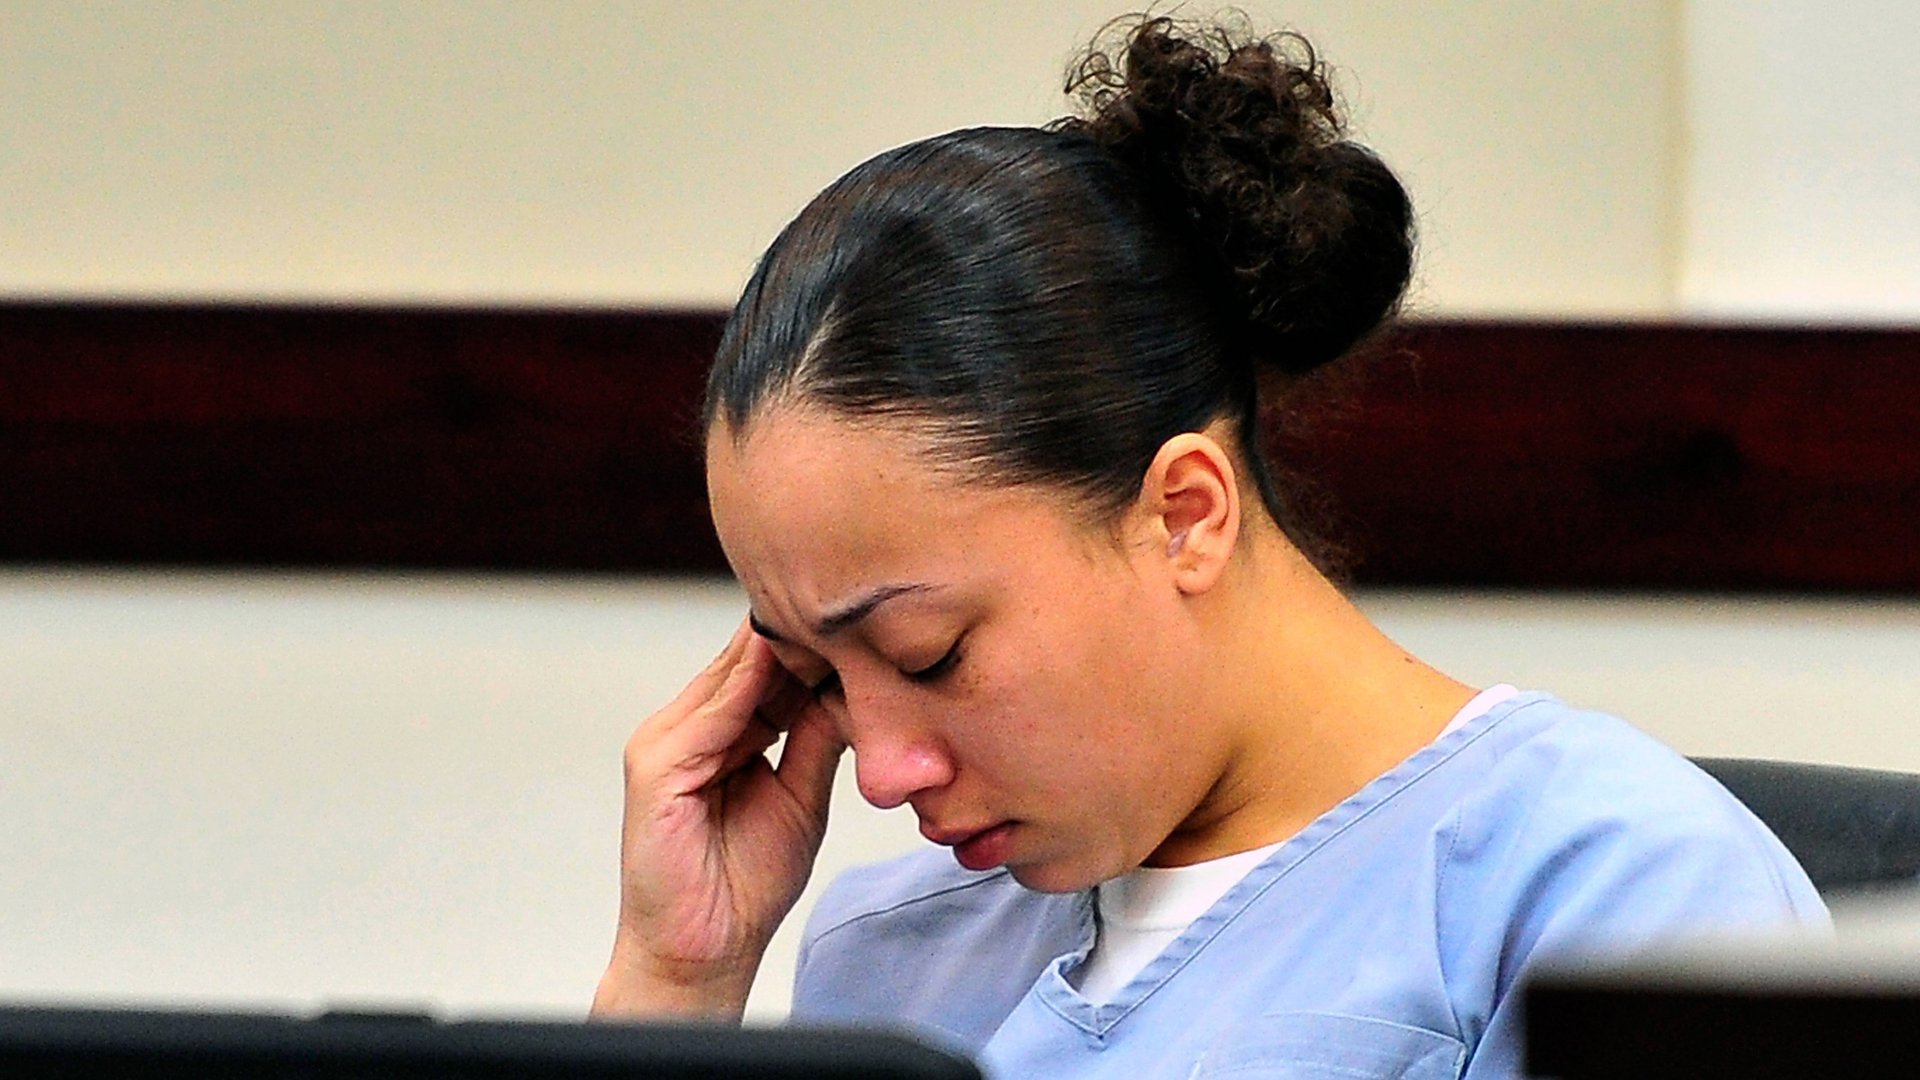 Cyntoia Brown, a woman who was 16 when she killed a Nashville man who solicited her for sex, must serve at least 51 years in prison before she's eligible for release, according to the Tennessee Supreme Court. She is seen in court in this undated photo. (Credit: Jae S. Lee/AP via CNN)